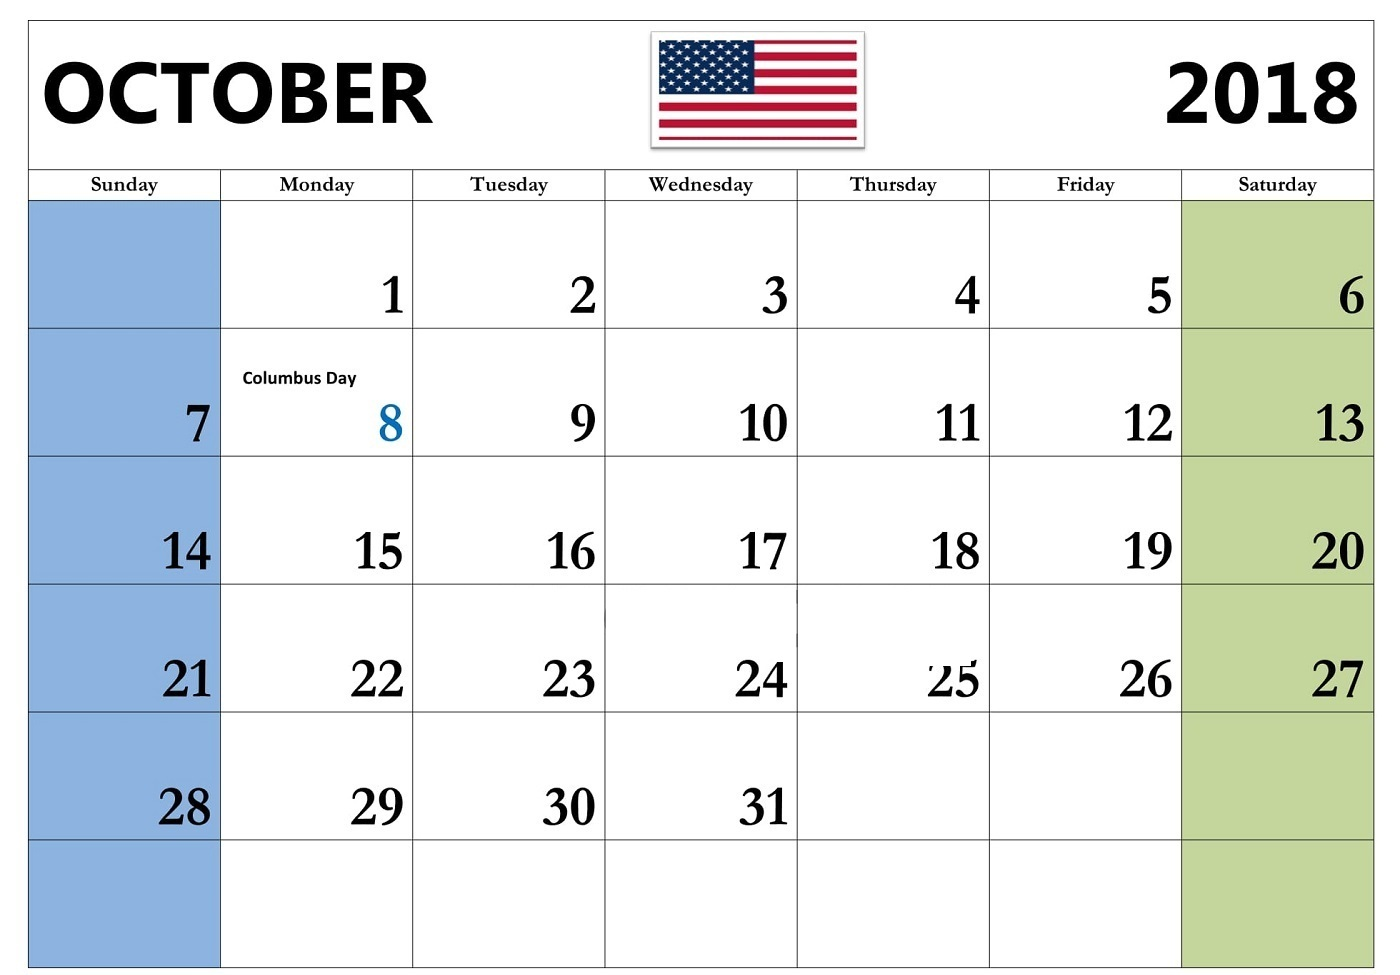 October 2018 Calendar Holidays USA